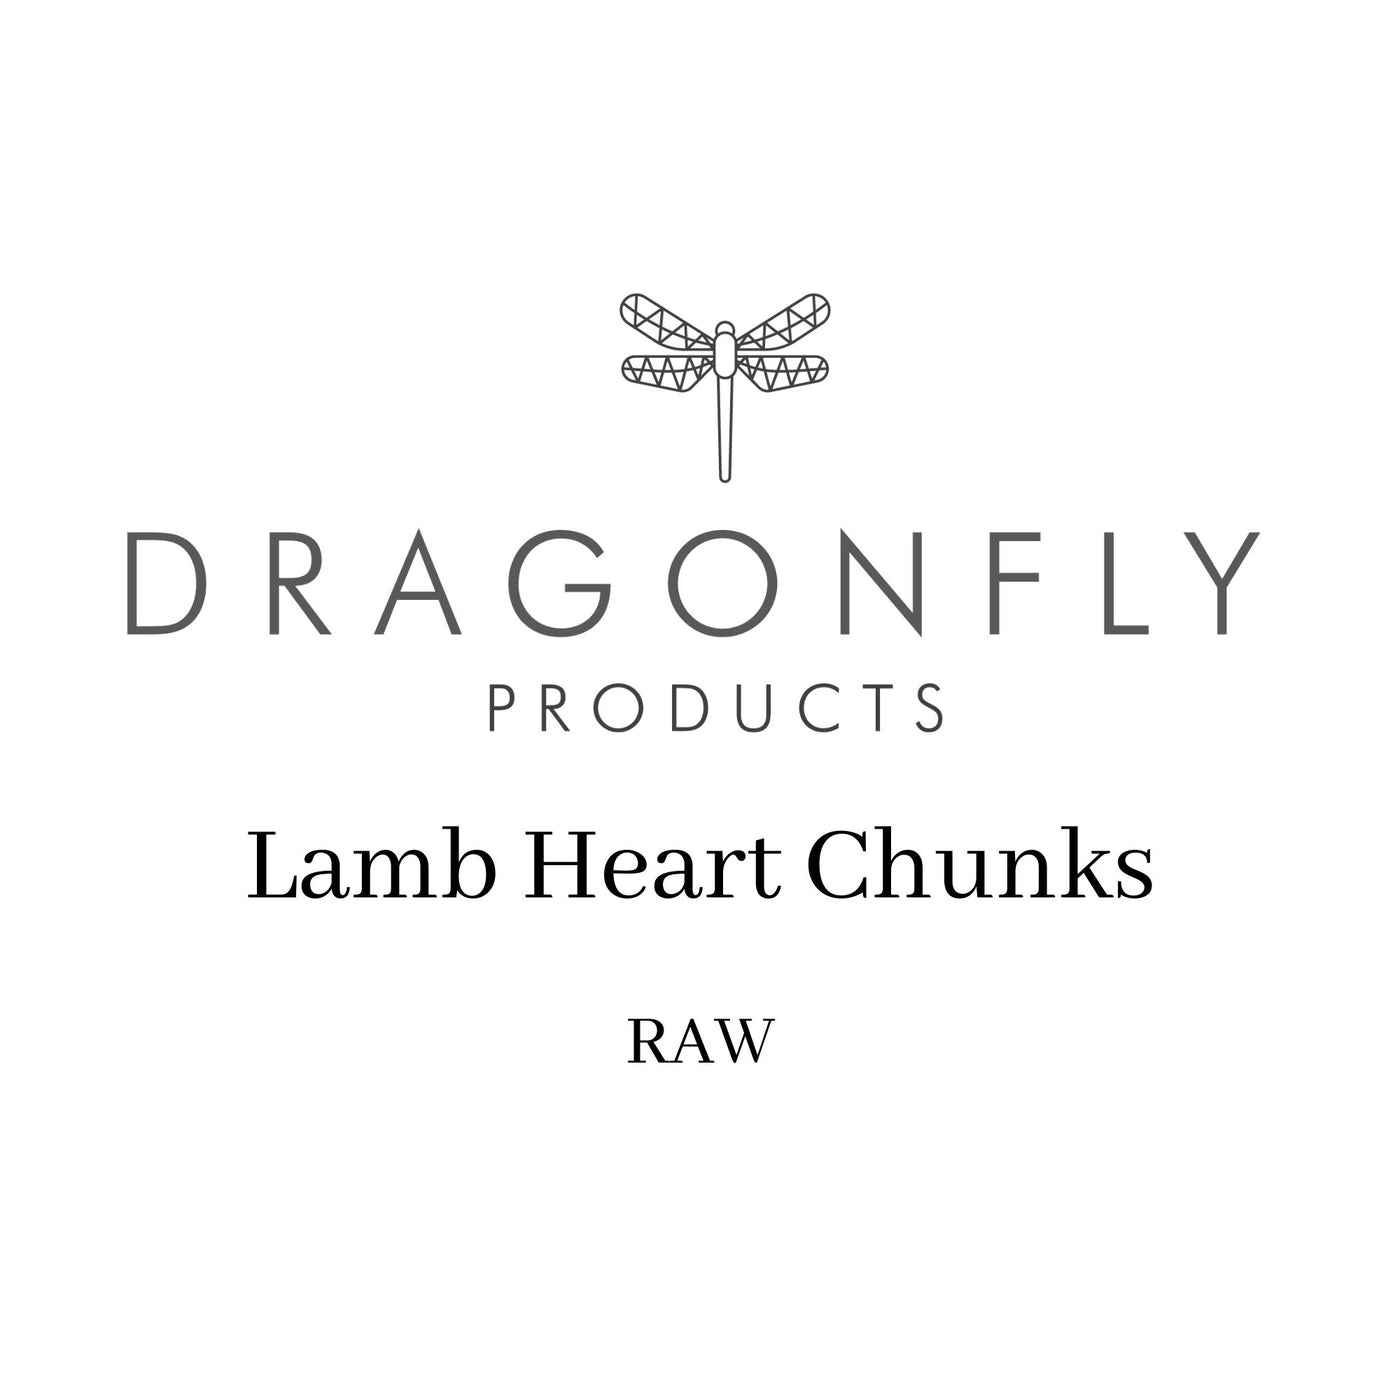 Lamb Heart Chunks (1kg) - RAW